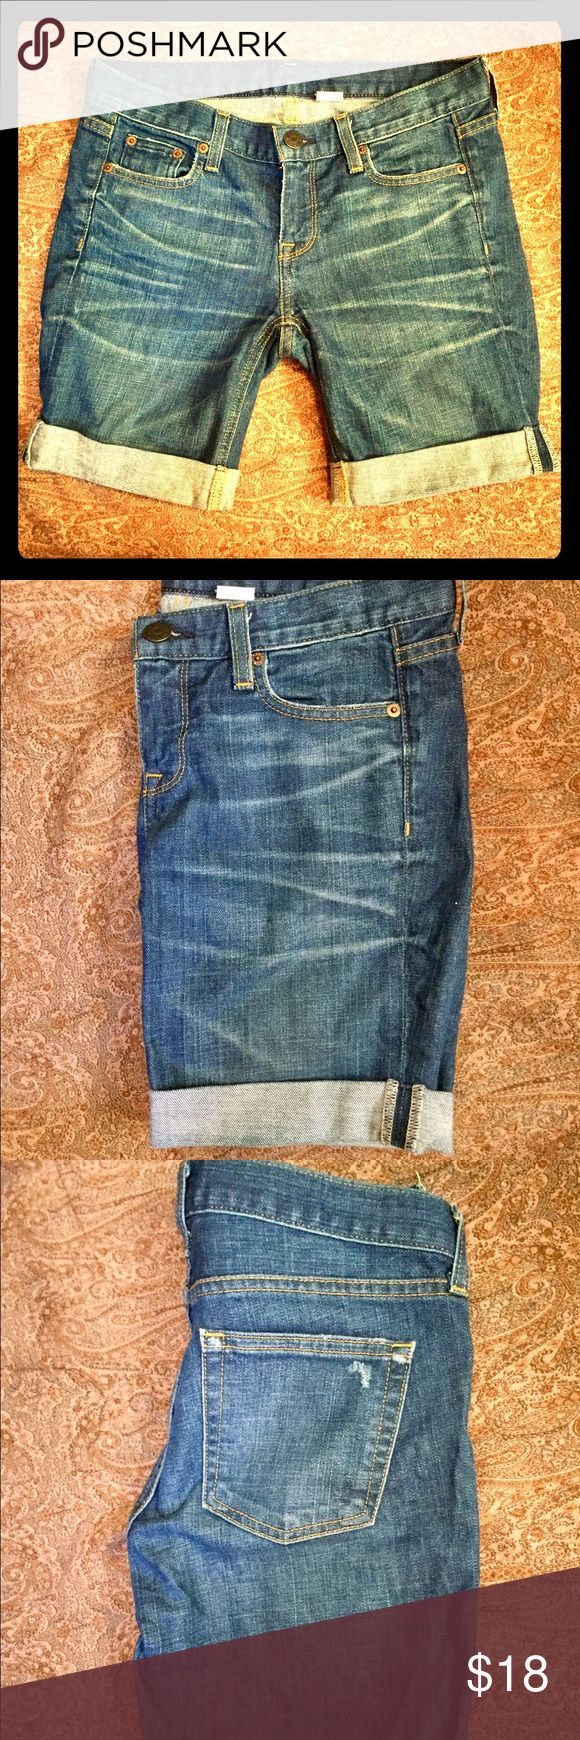 💗J Crew Cuffed Denim Bermuda Shorts, EUC, 25 Well-made J Crew shorts, cuffed, bermuda-style, in excellent condition–#flawless! Just too big for me now. Indigo, medium blue wash.  Size 25 – XS.  Let me know if you have any questions! Bundle for up to 40% off plus combined shipping~  #jcrew #jcrew25 #jcrew0 #jcrewxs #bermudashorts #summer #spring #fashionfun #stylestaple J. Crew Shorts